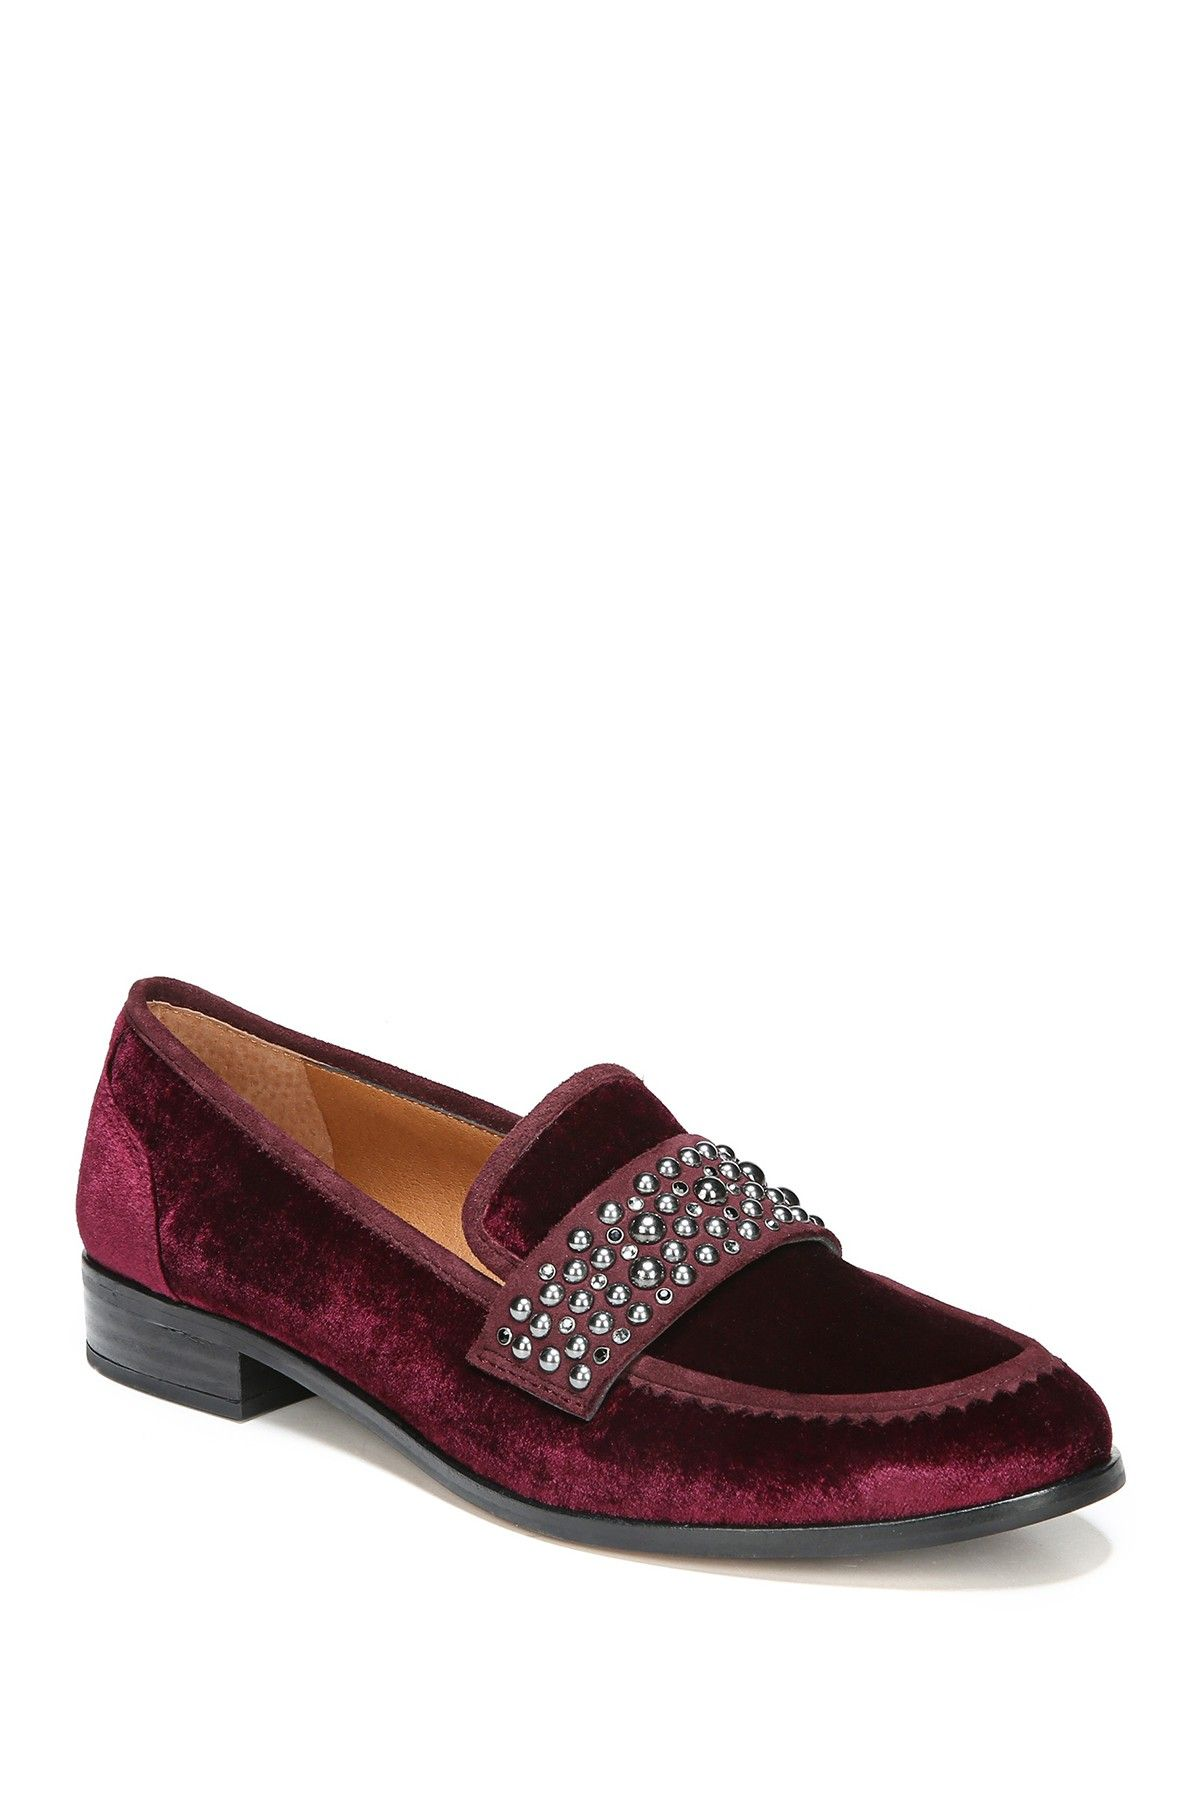 SARTO BY FRANCO SARTO | Johanna Studded Loafer - Multiple Widths Available #nordstromrack